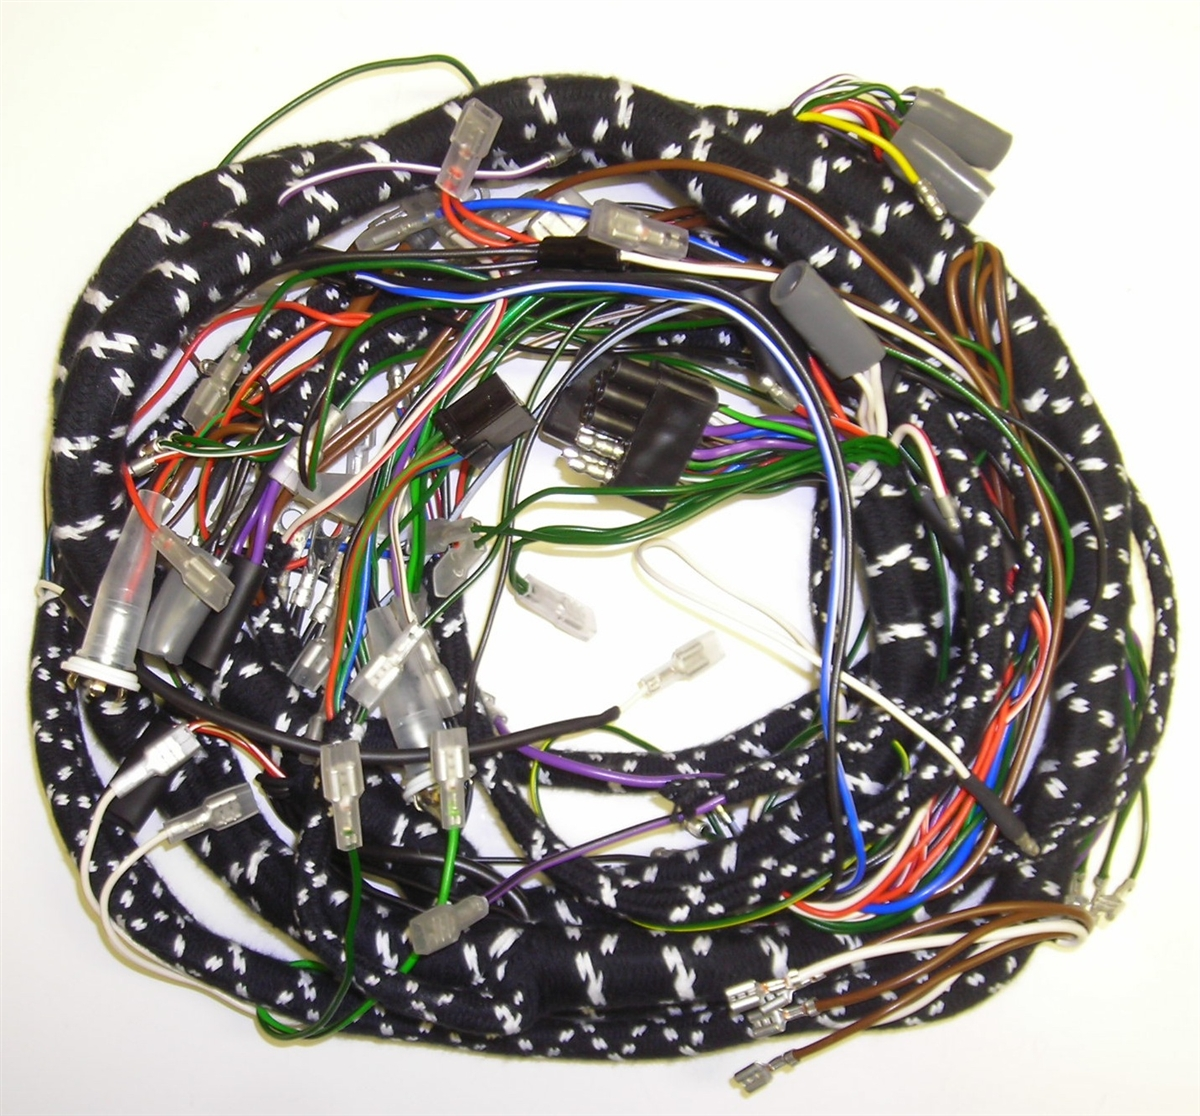 hight resolution of triumph spitfire wiring harness for triumph mgb wiring loom mgb image wiring diagram on triumph spitfire